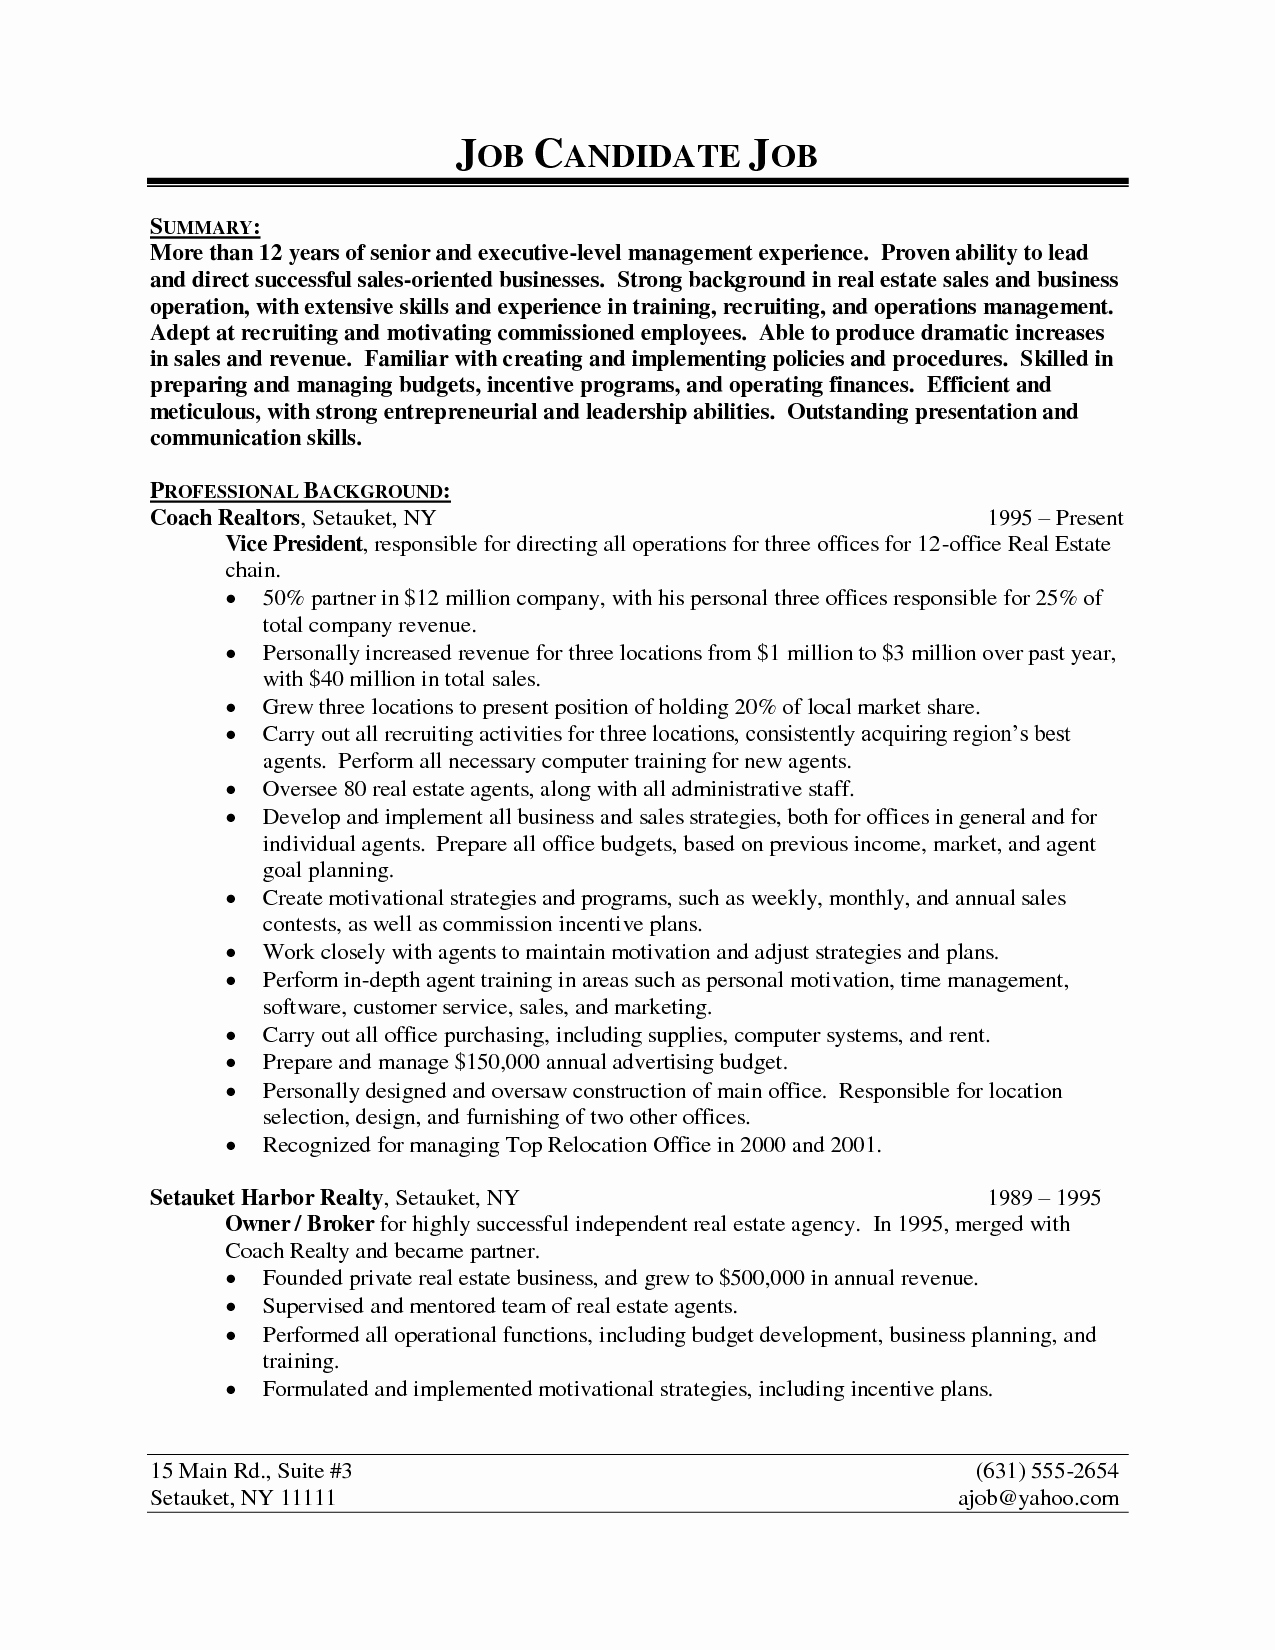 Resume Sample for Real Estate Agent Resume Ideas